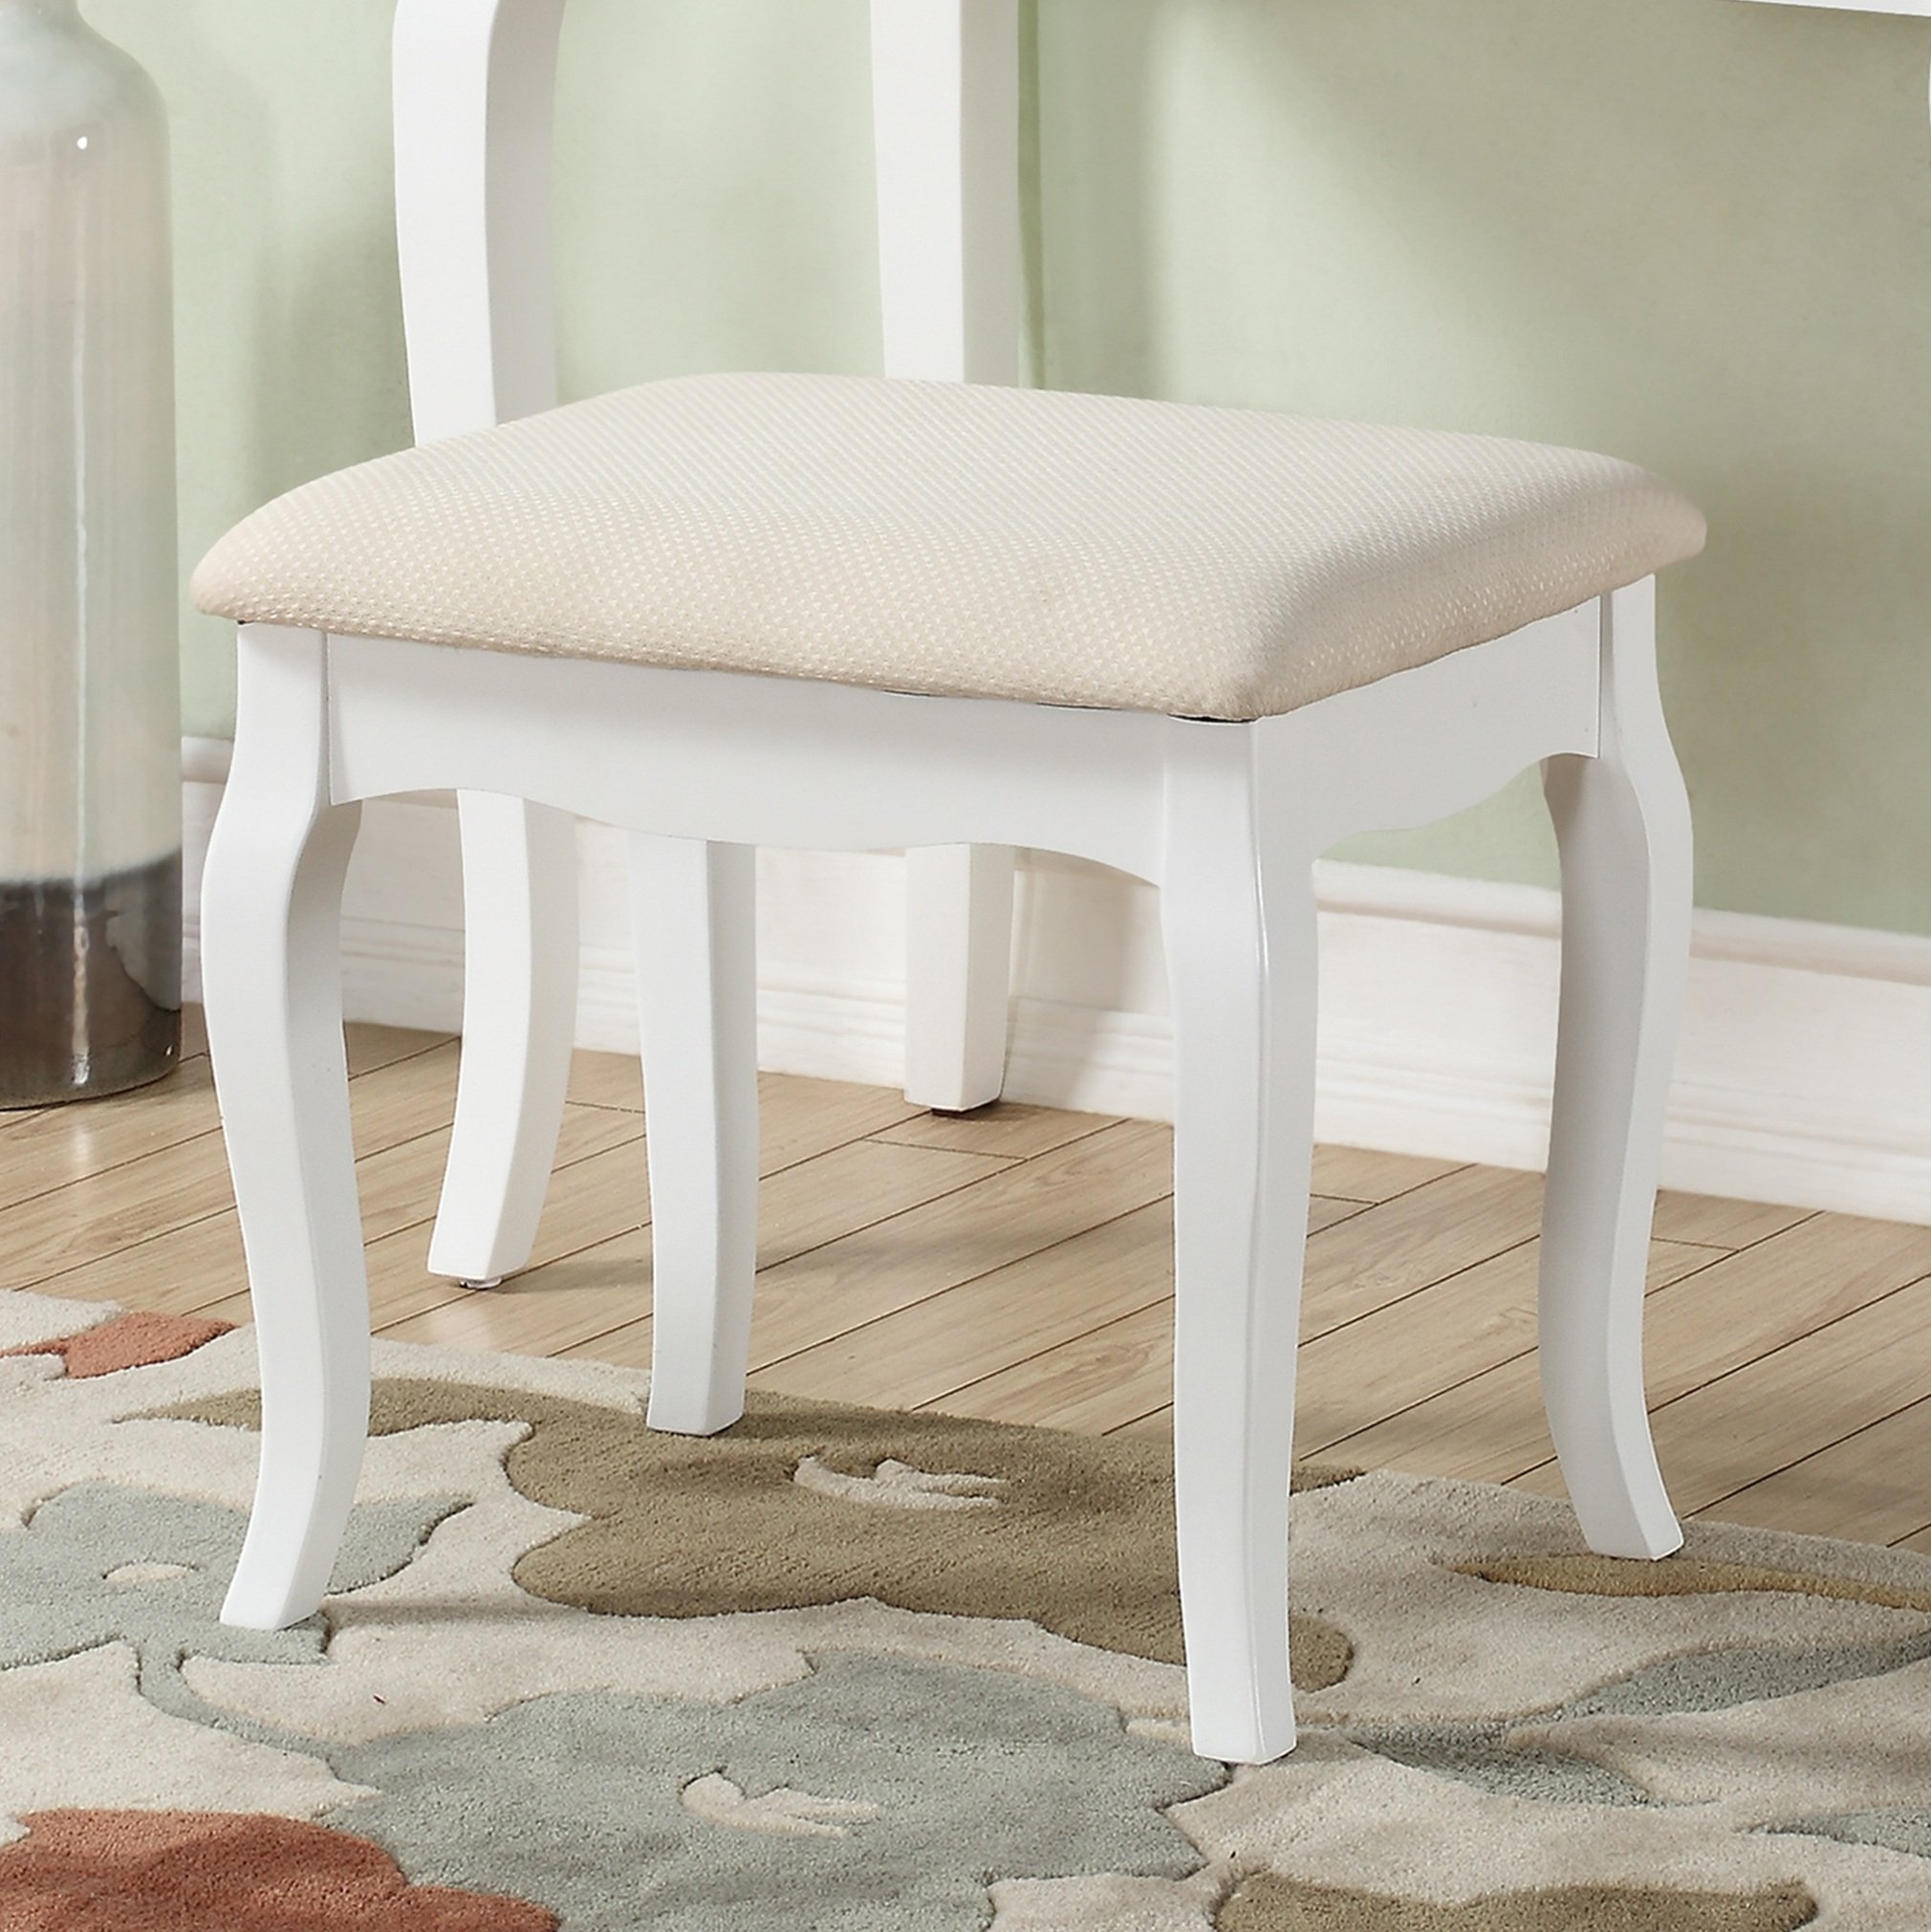 White Vanity Table And Chair Roundhill Furniture Ashley Wood Make Up Vanity Table And